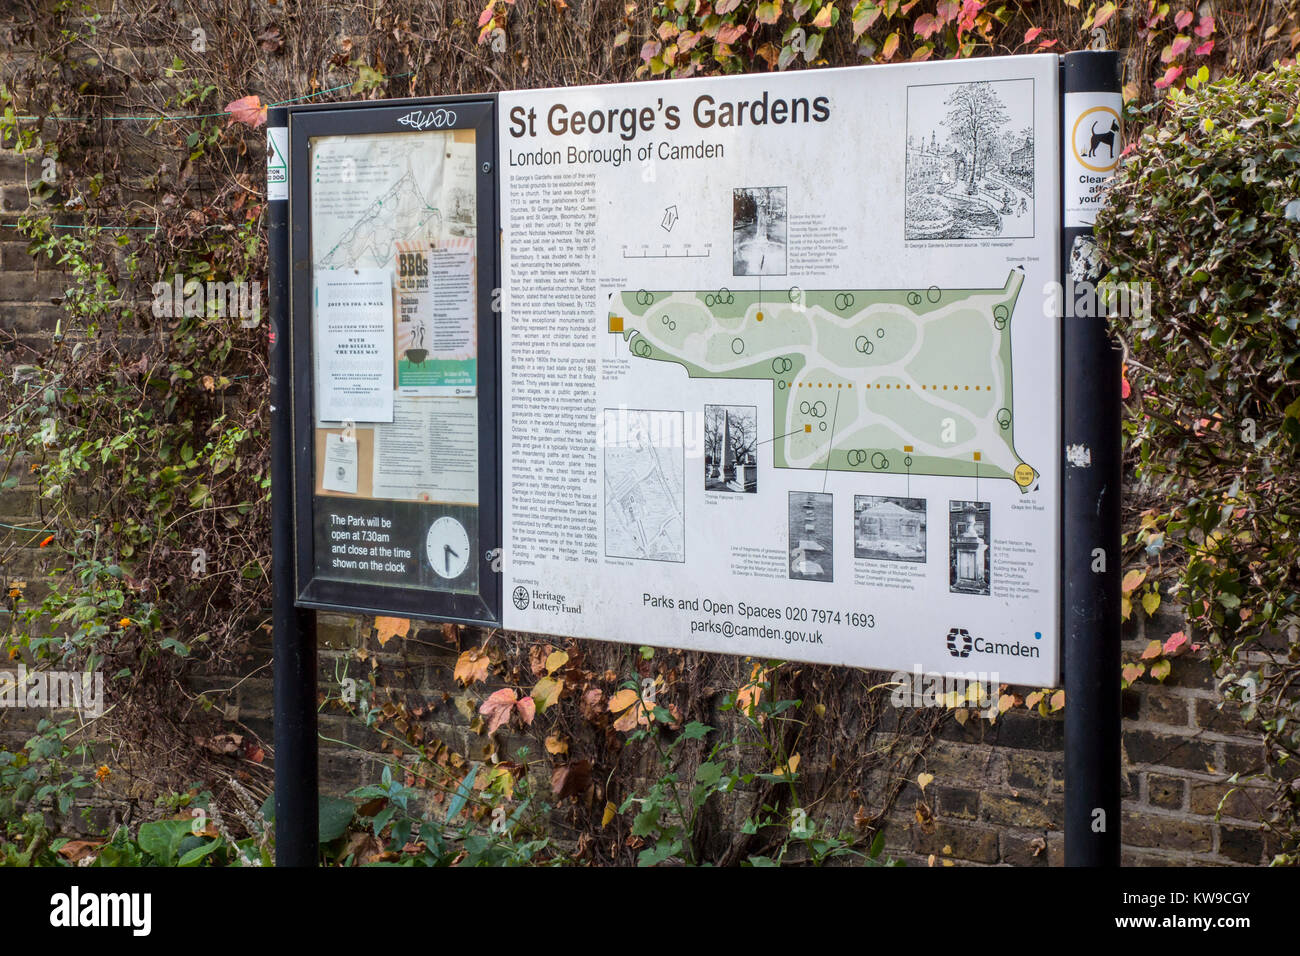 St George's Gardens, Bloomsbury, London, UK. 18th century burial ground now public gardens with old tombs and - Stock Image